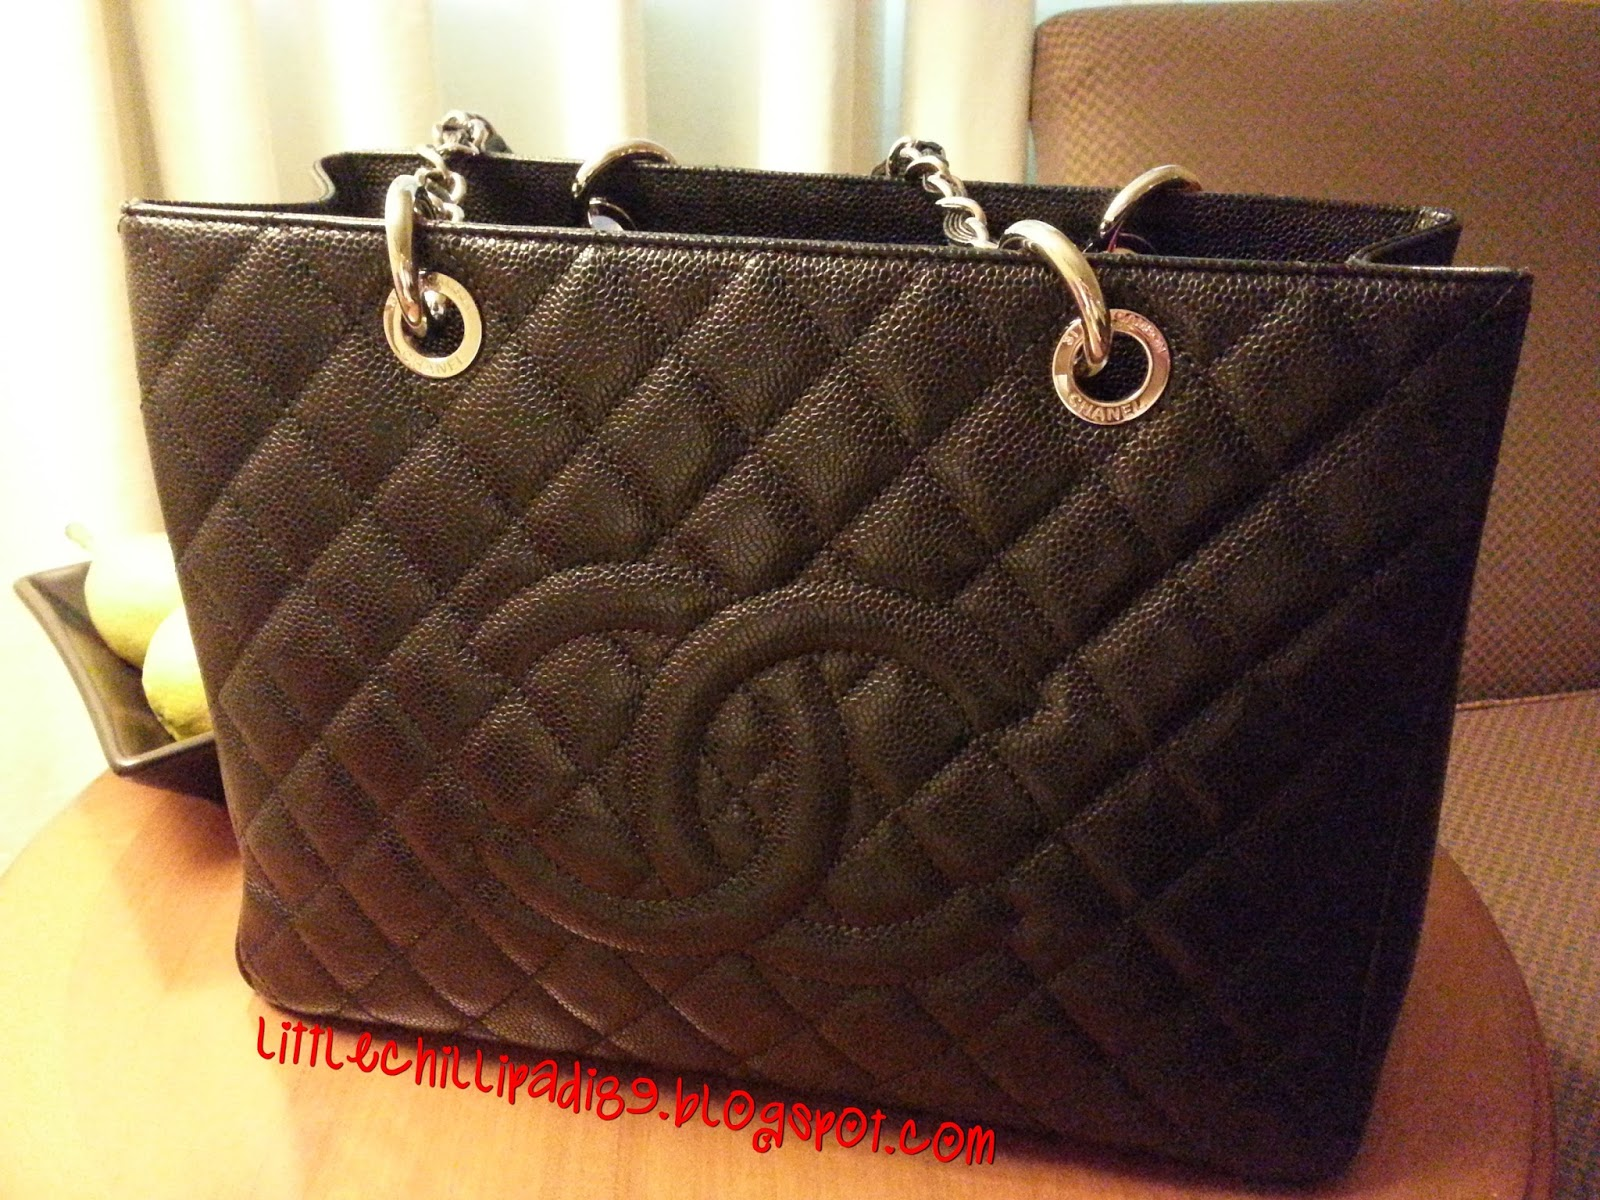 d47d4f788e03 littlechillipadi  Review of Chanel GST(Grand Shopping Tote)